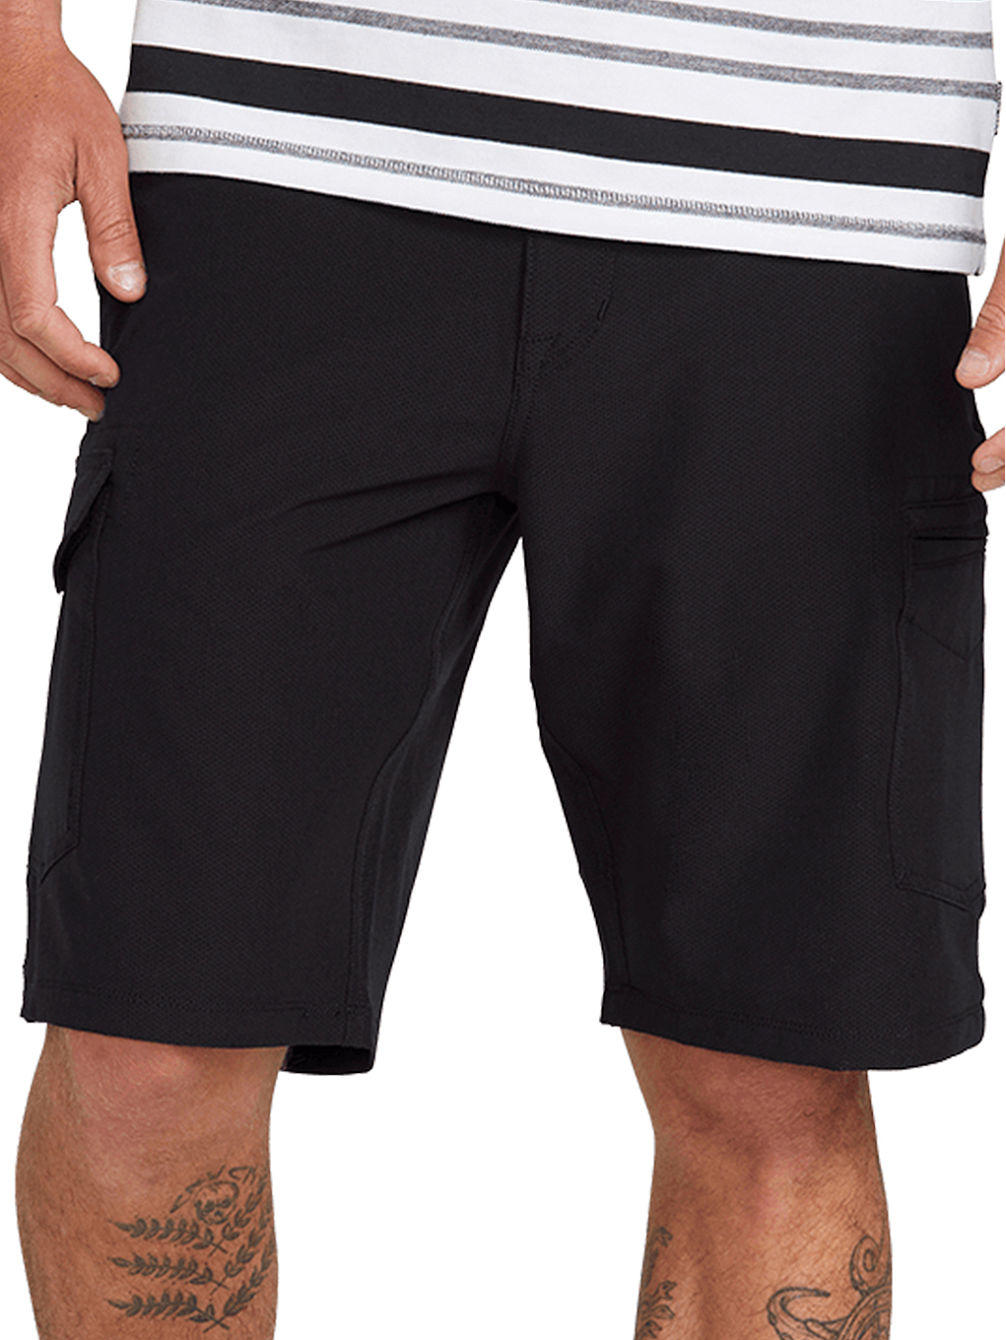 "Snt Dry Cargo 21"" Shorts"